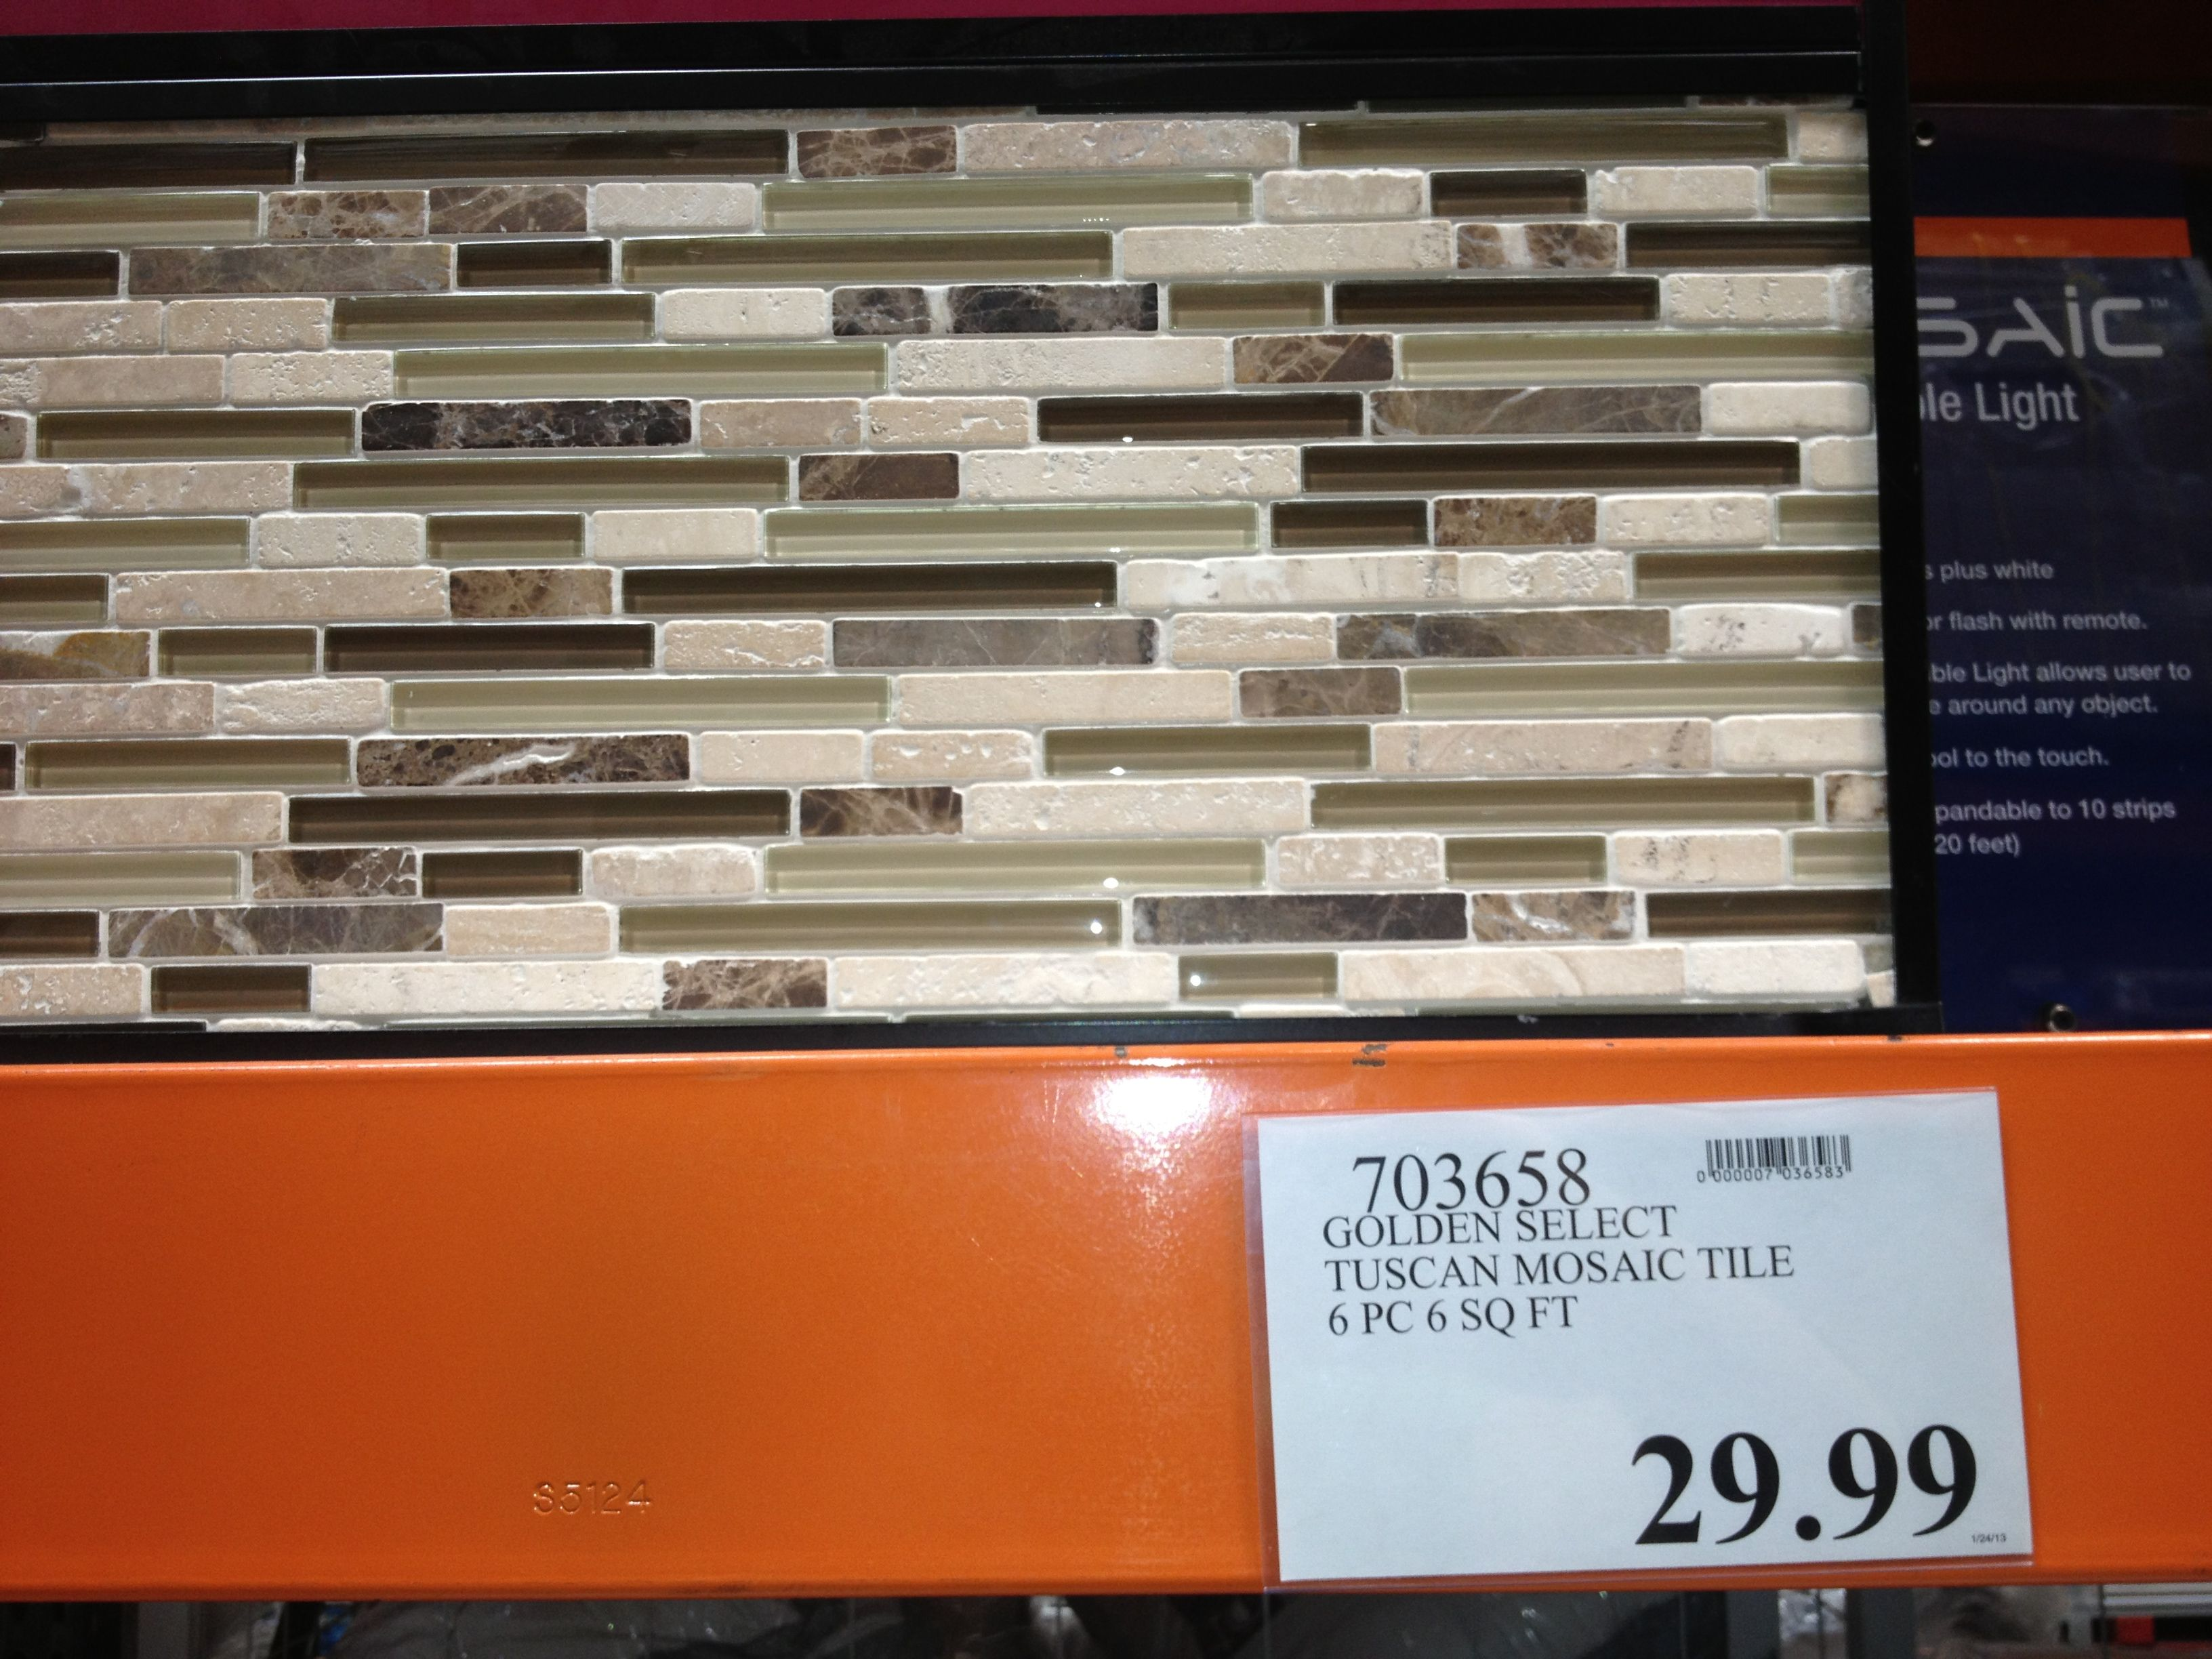 Golden select Glass and Stone Tuscan Mosaic Tile 6pc for